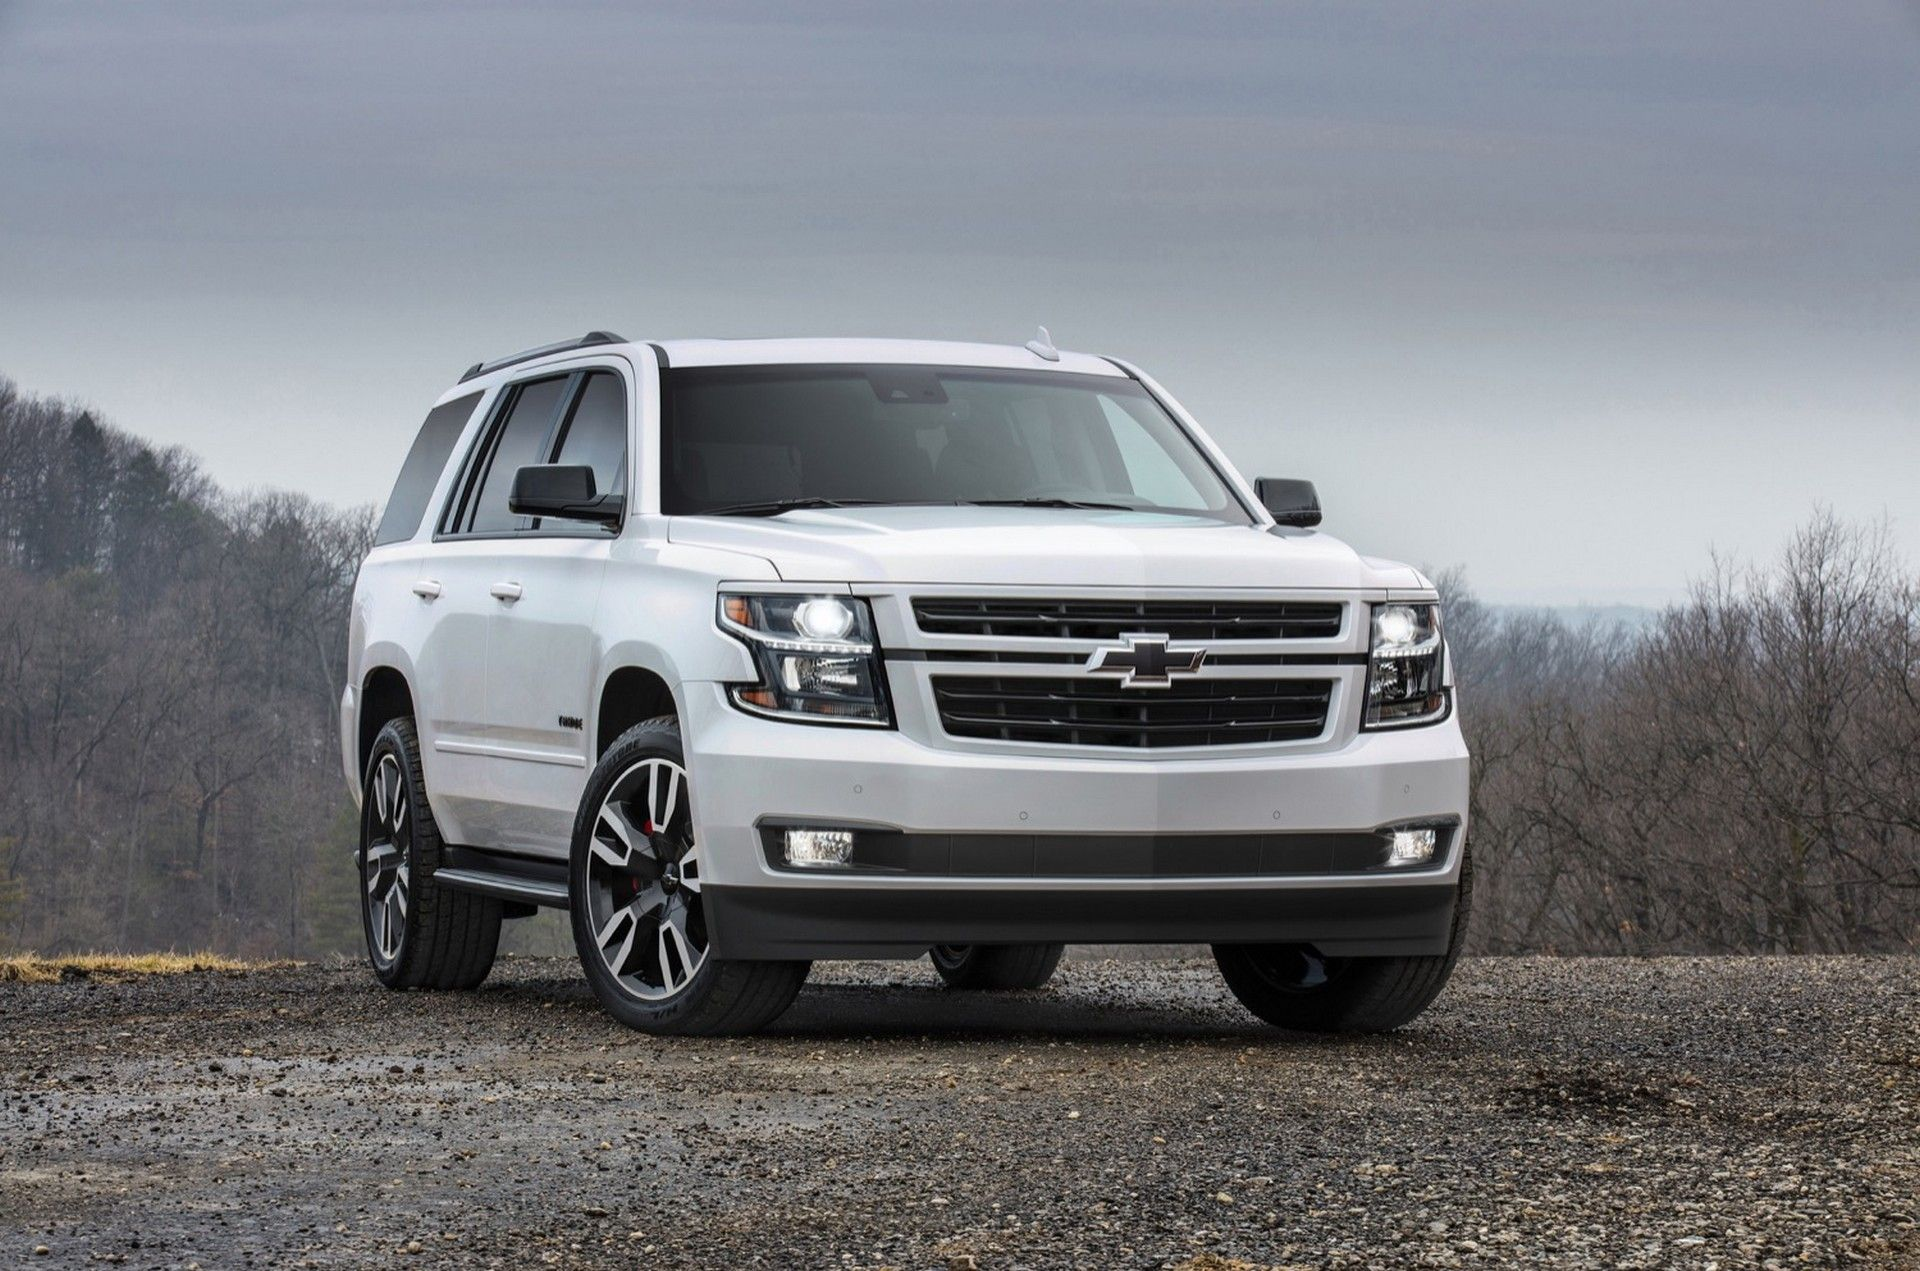 2020 Chevy Tahoe Price and Review